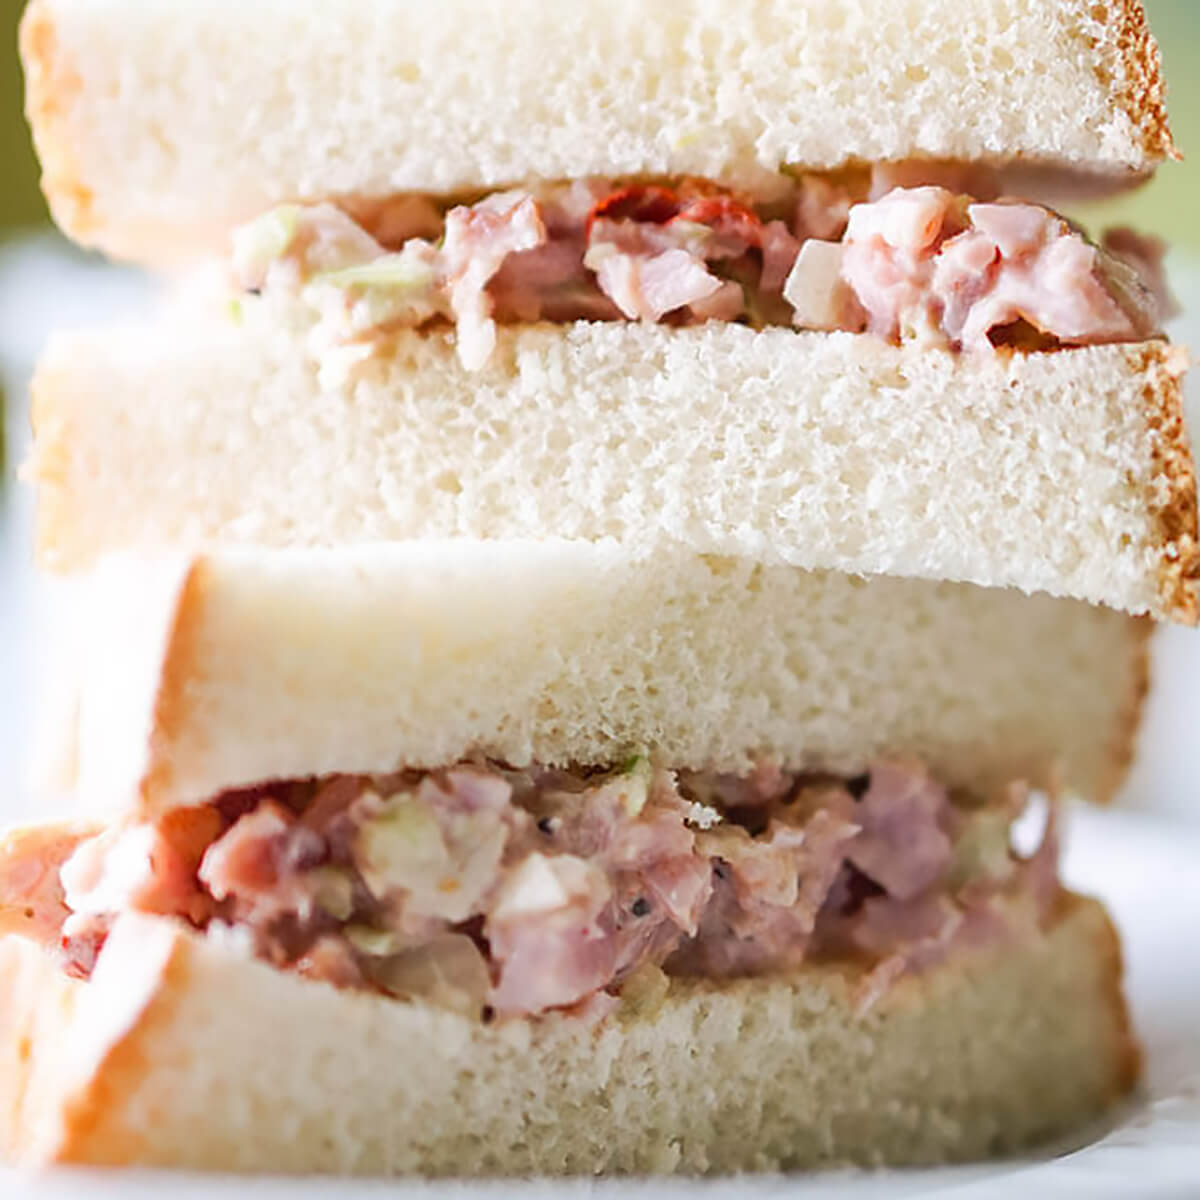 Ham sandwich with white bread.